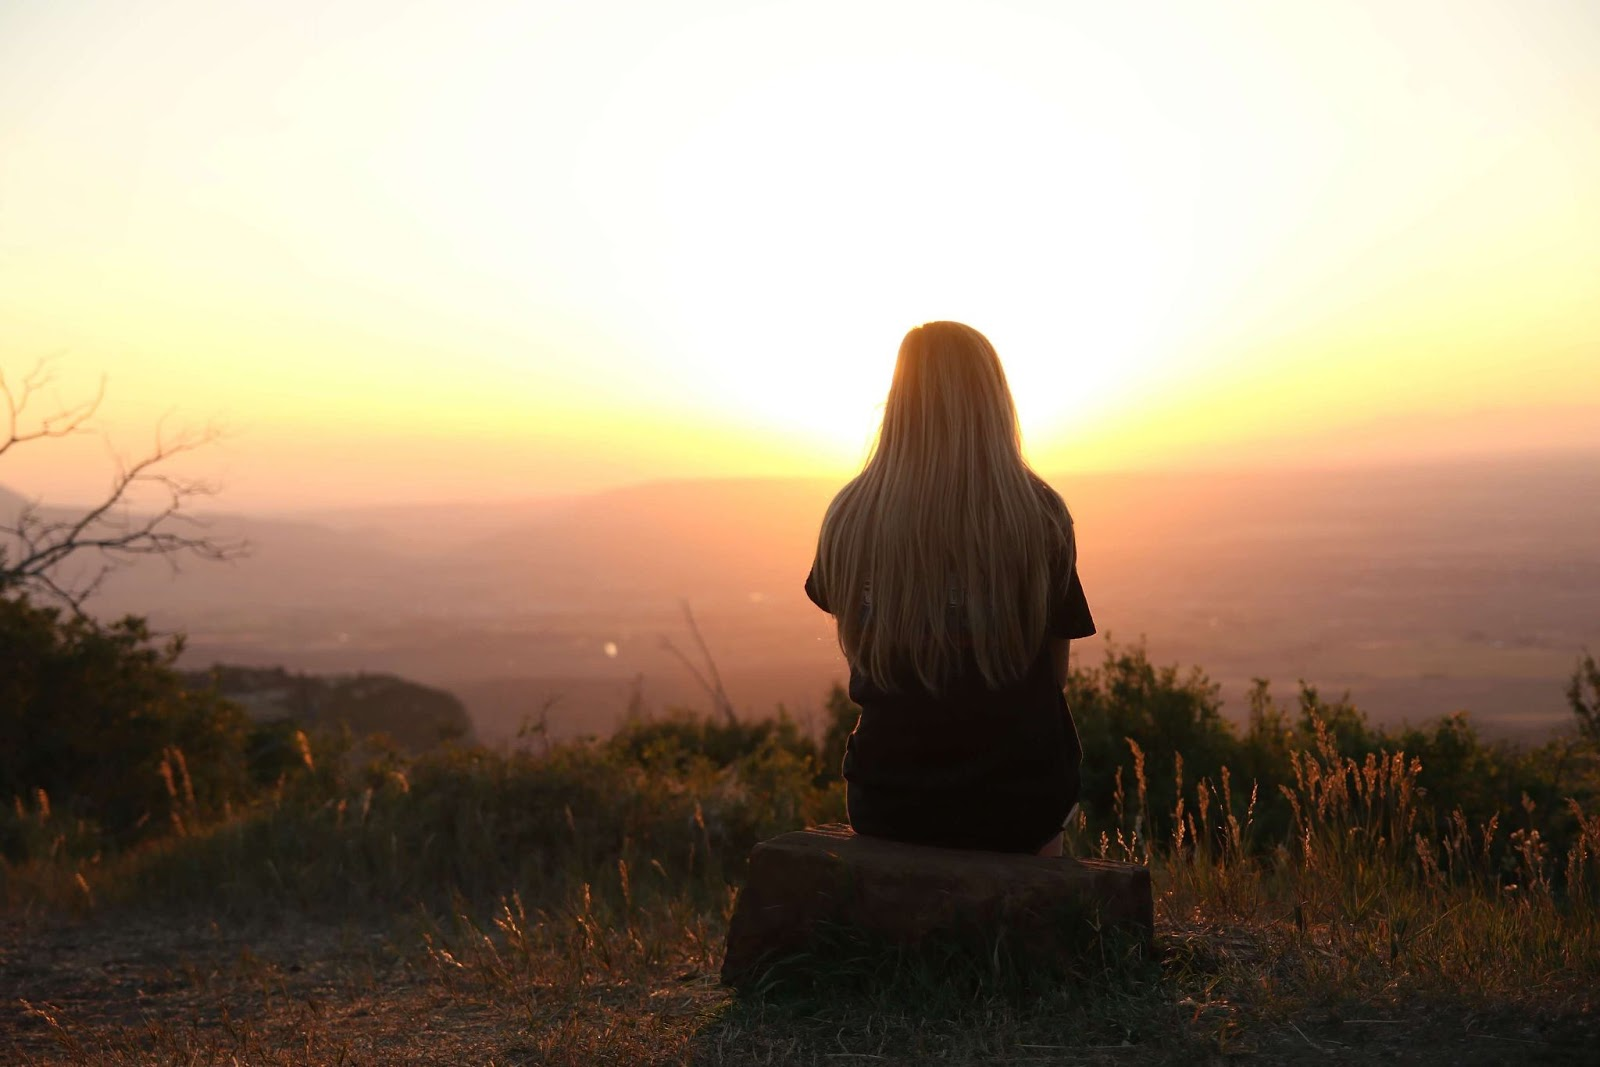 A woman, her back turned, watching a hazy golden sunrise from atop a hill